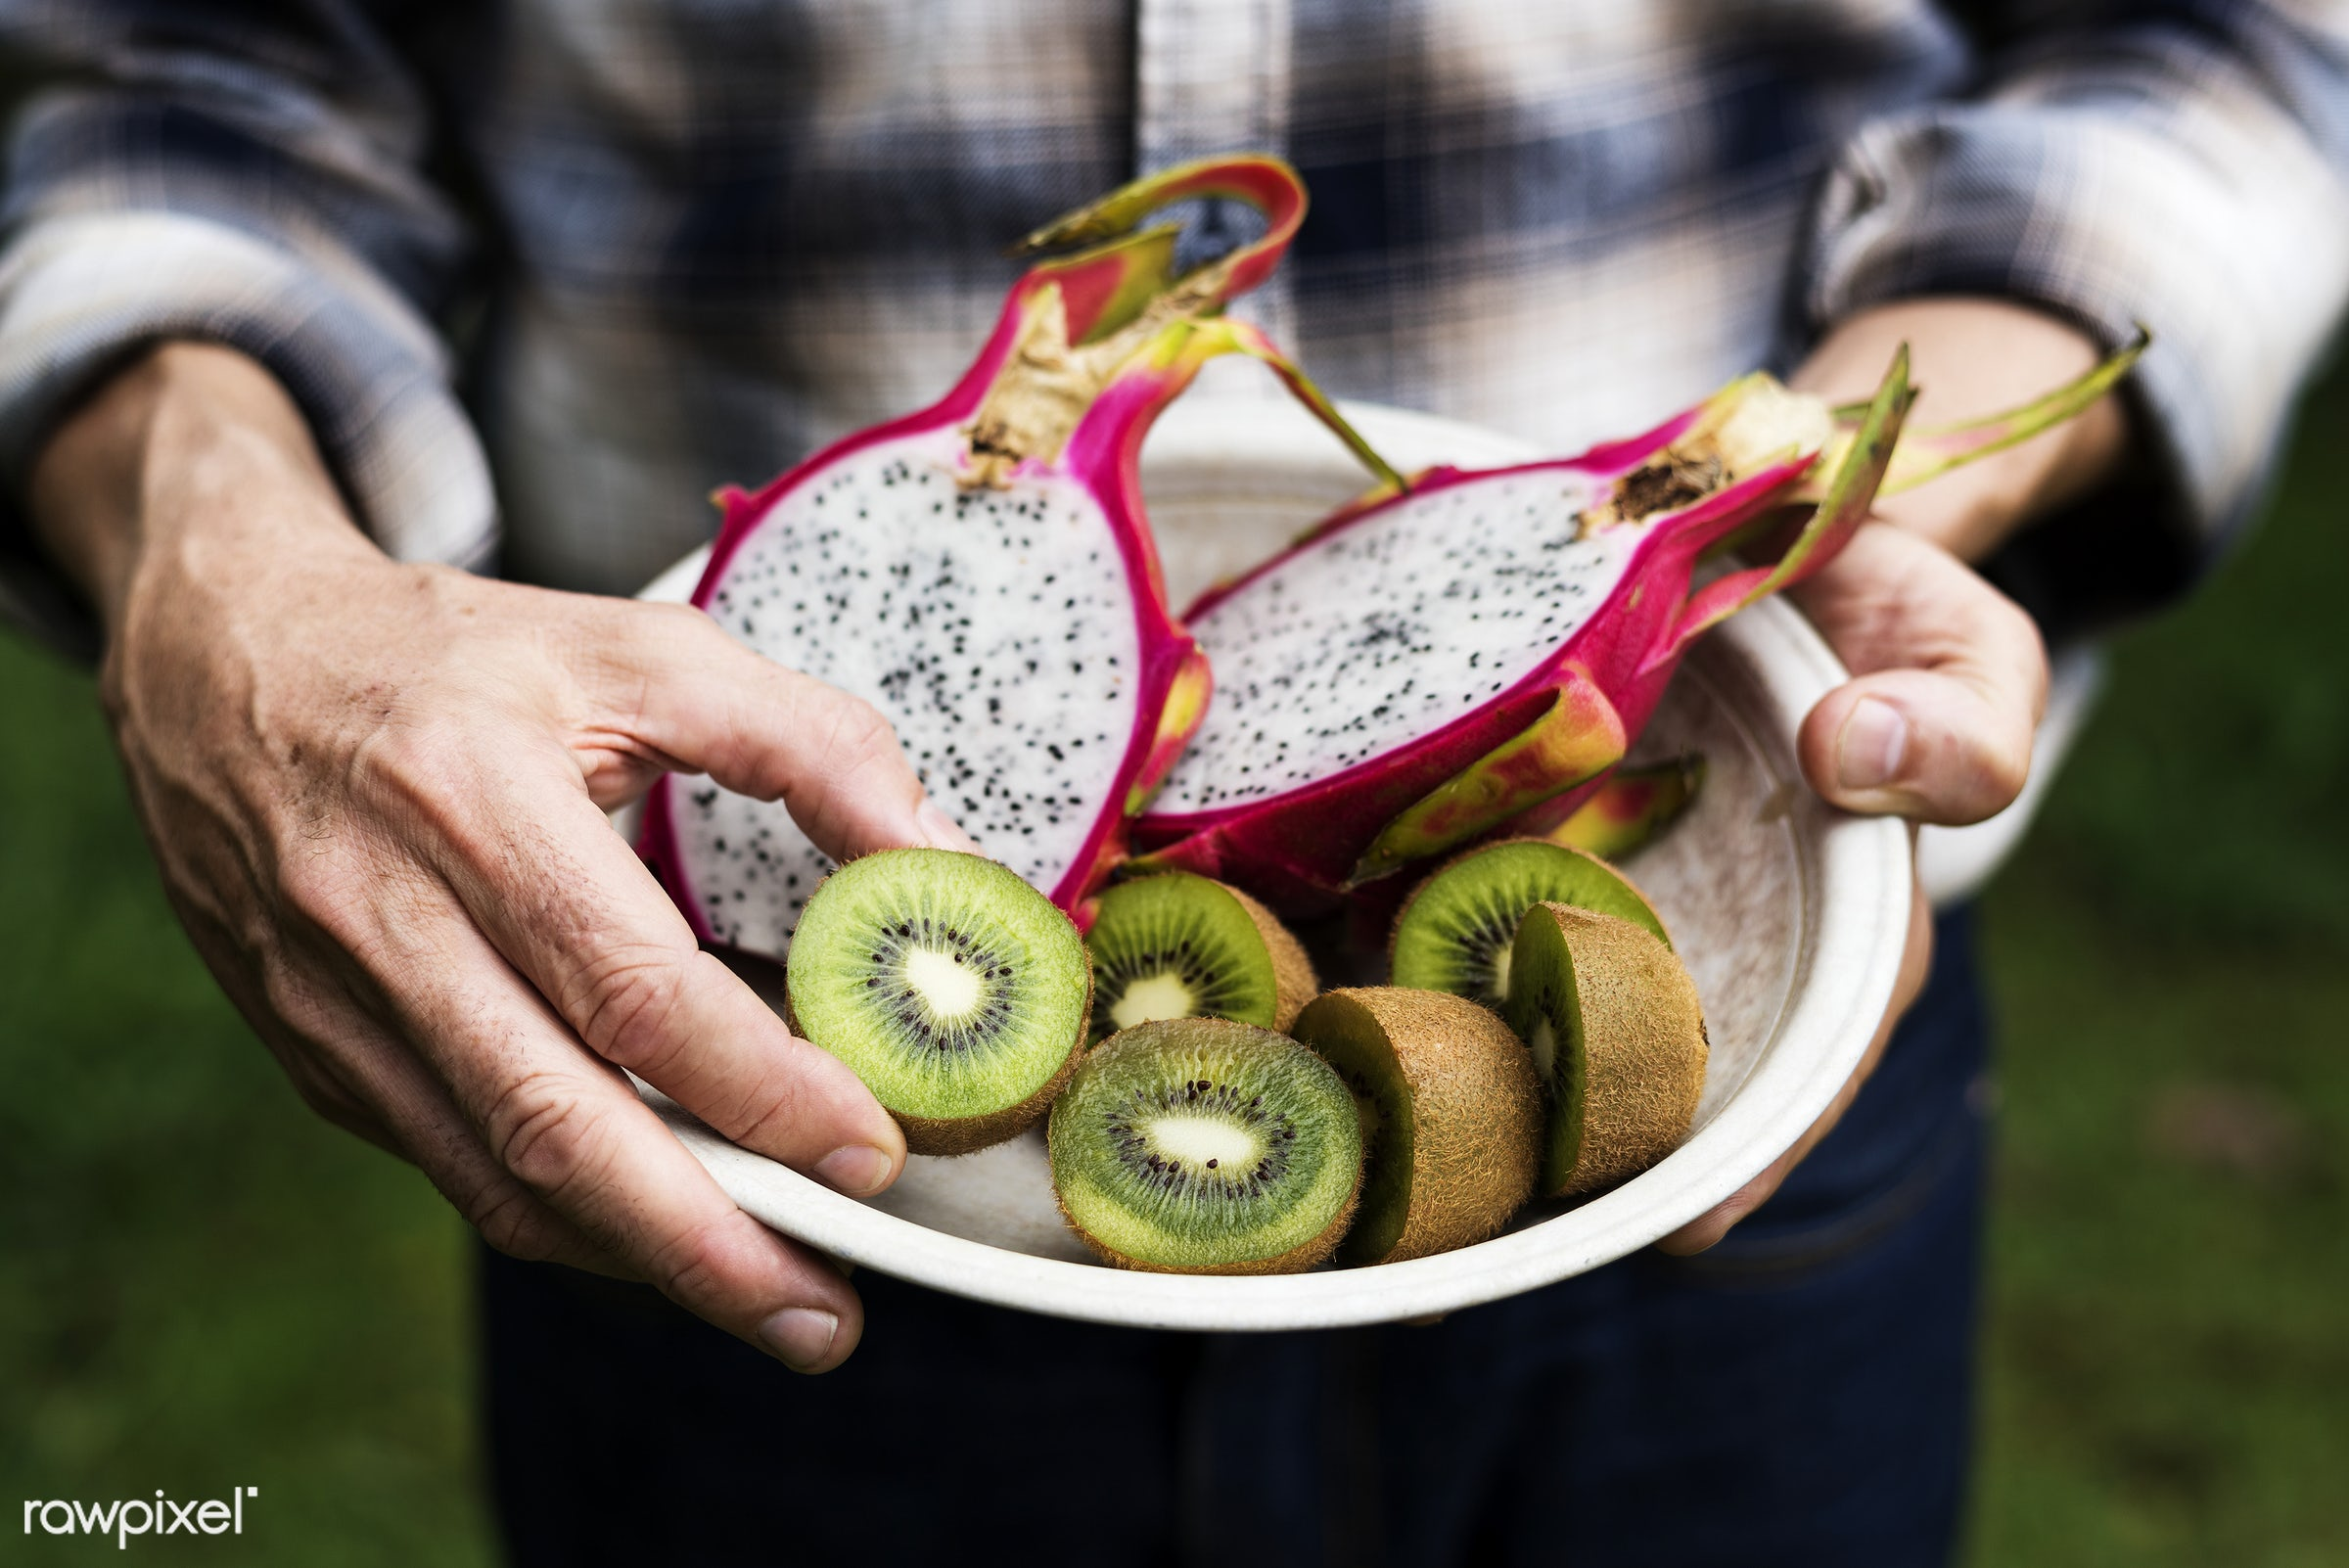 bowl, holding, half, nutrients, real, organic, dragon fruit, fresh, hands, food, kiwi, showing, cut, vegetable, closeup,...